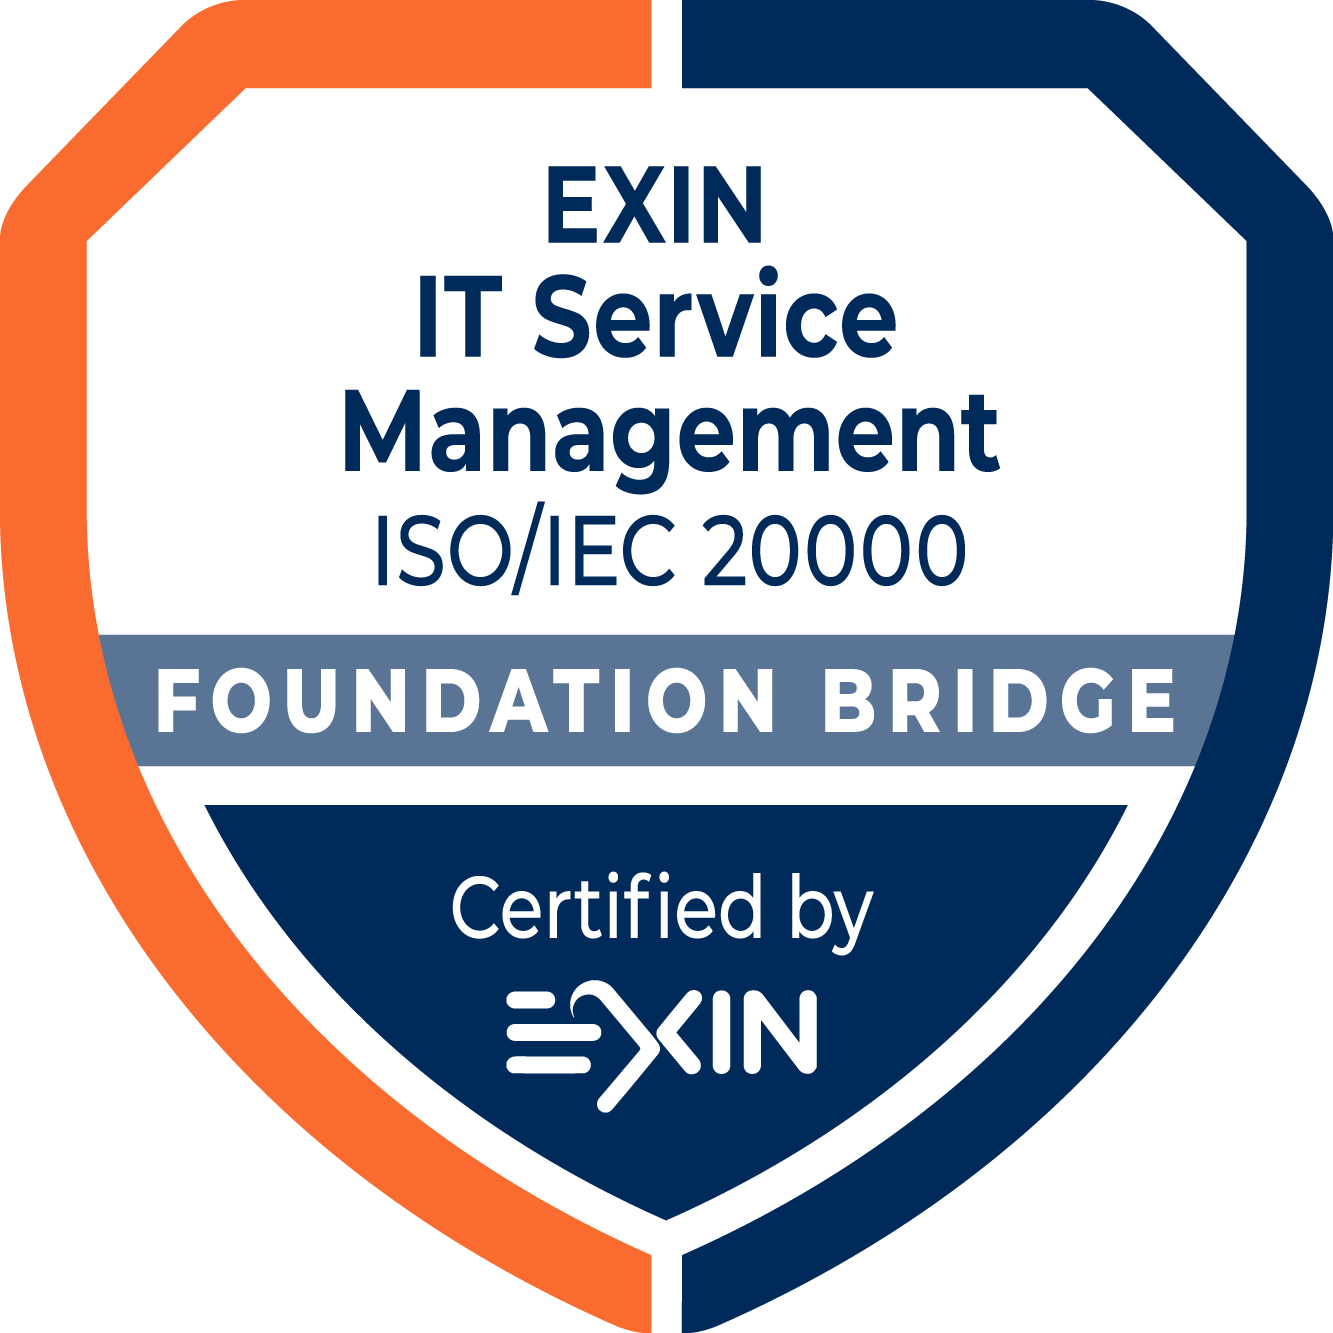 EXIN IT Service Management Foundation Bridge based on ISO/IEC 20000:2018